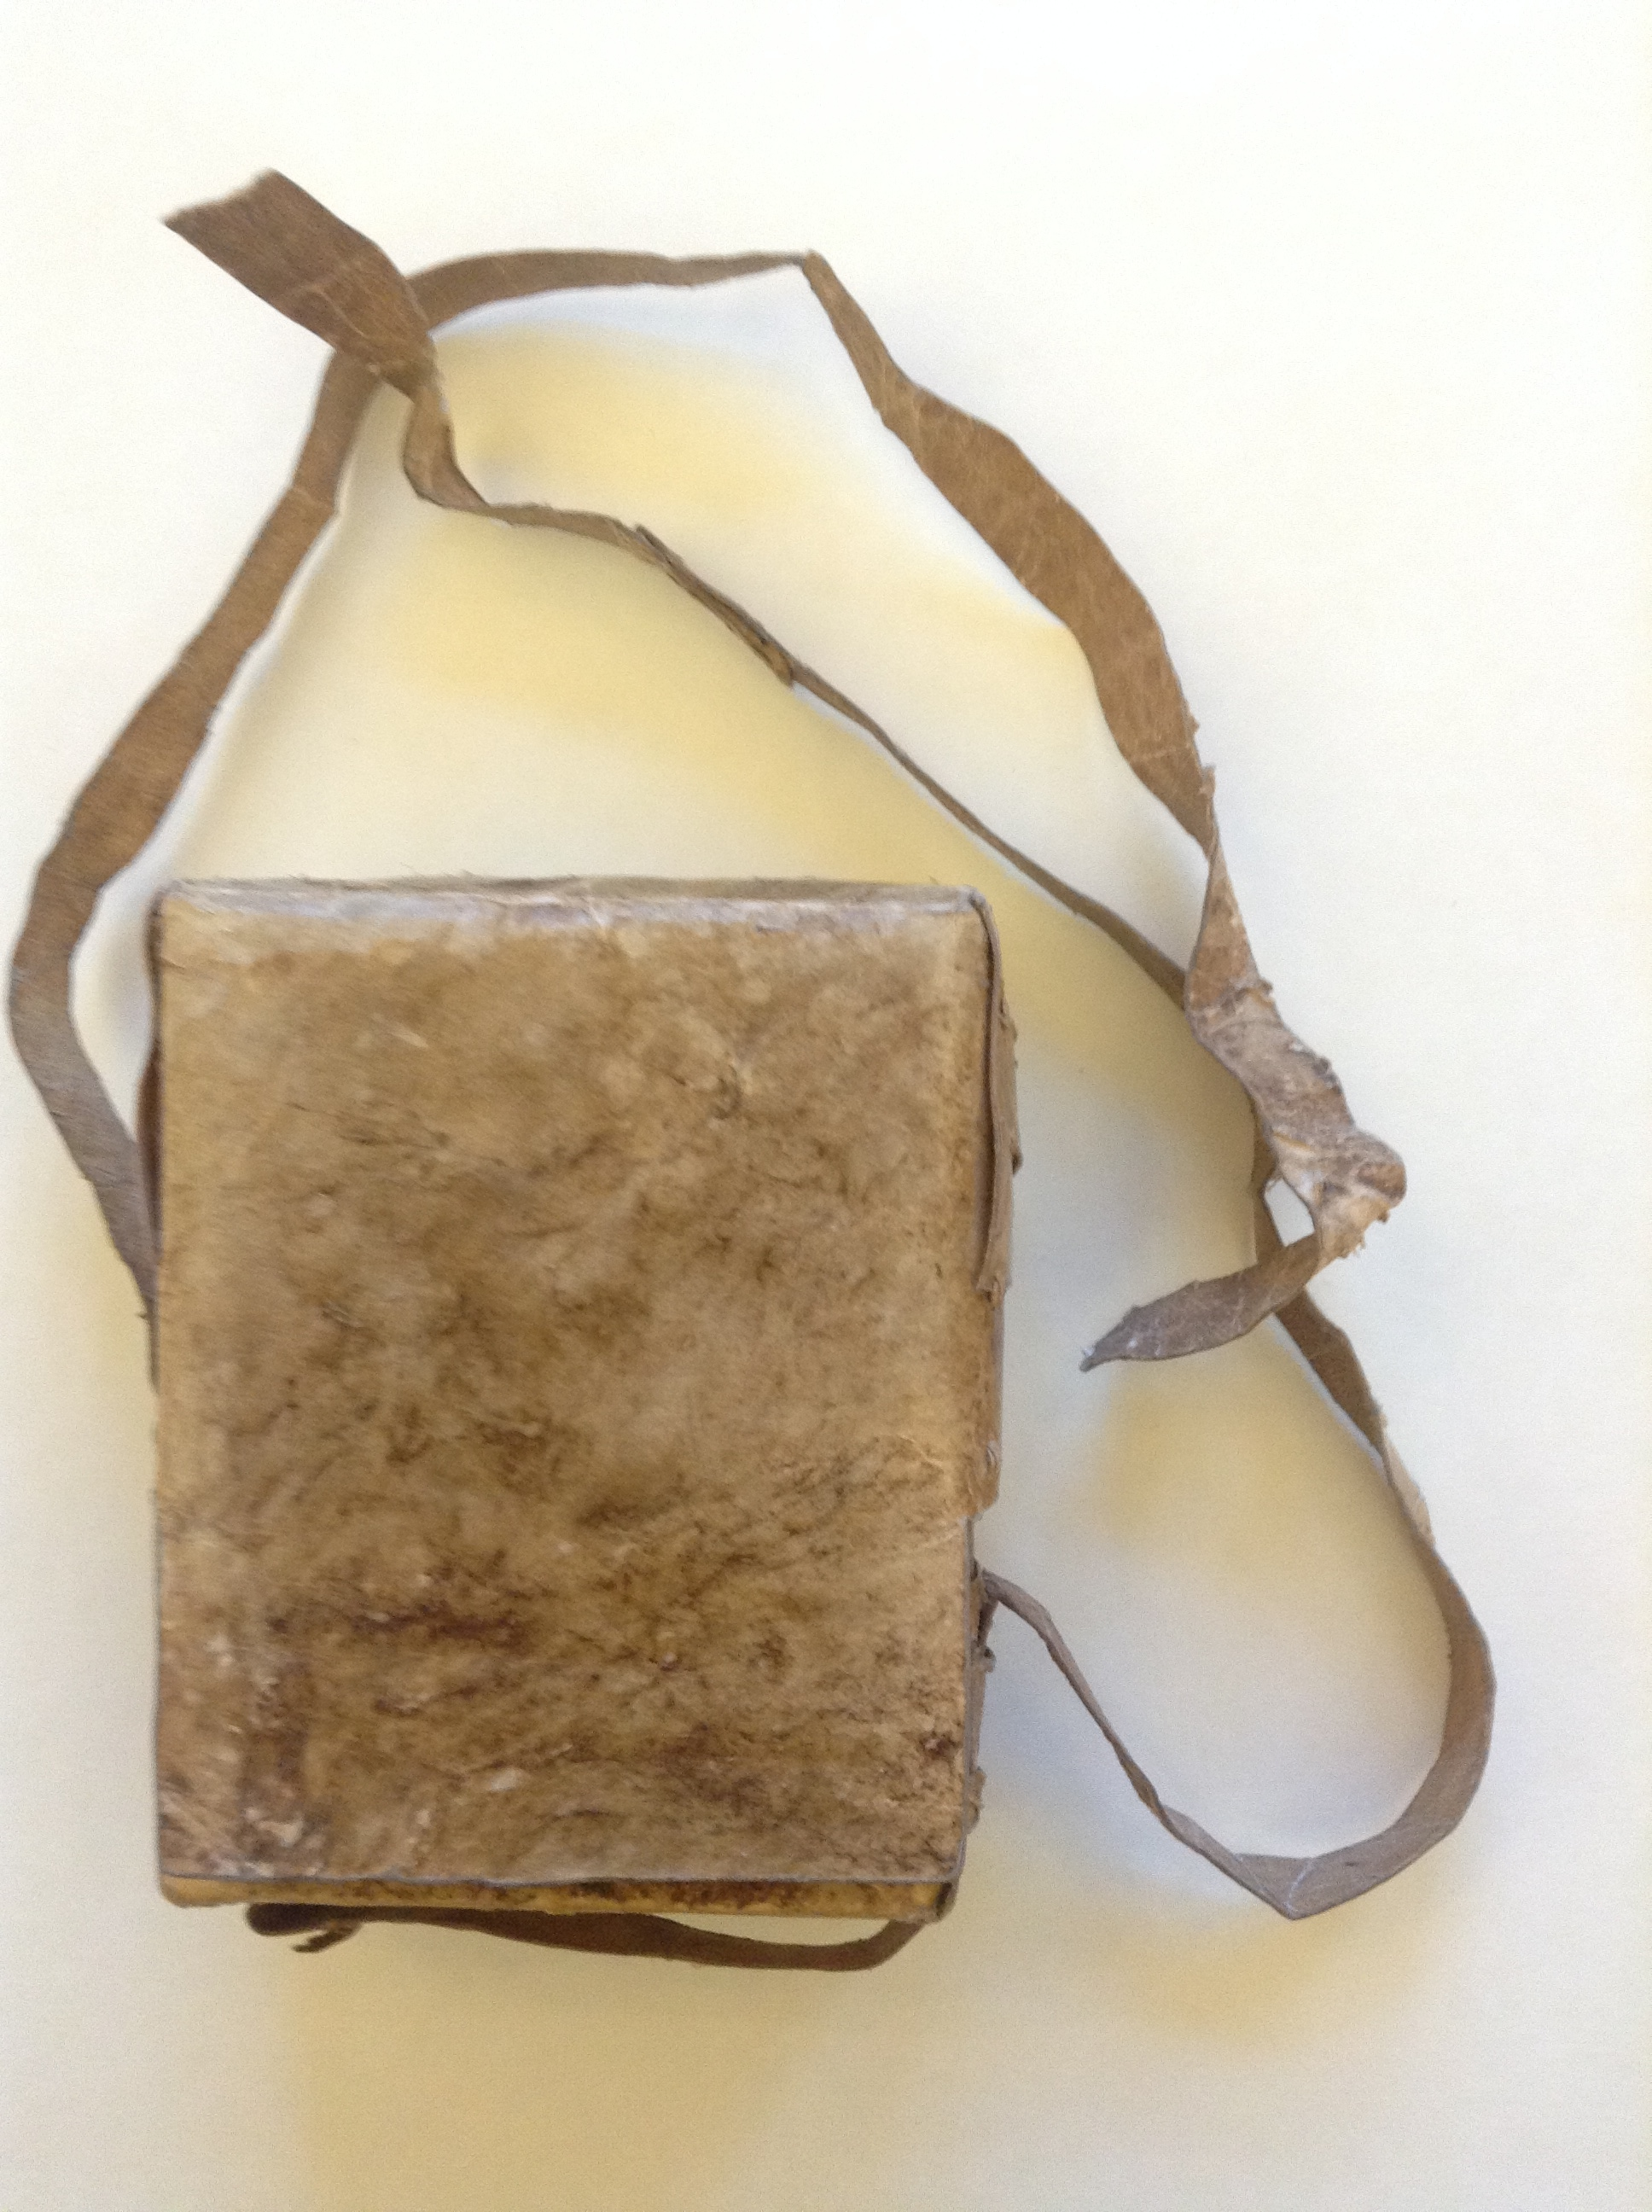 How To Make A Book Cover From A Paper Bag ~ Easy diy book cover all you need is a brown paper bag and maybe